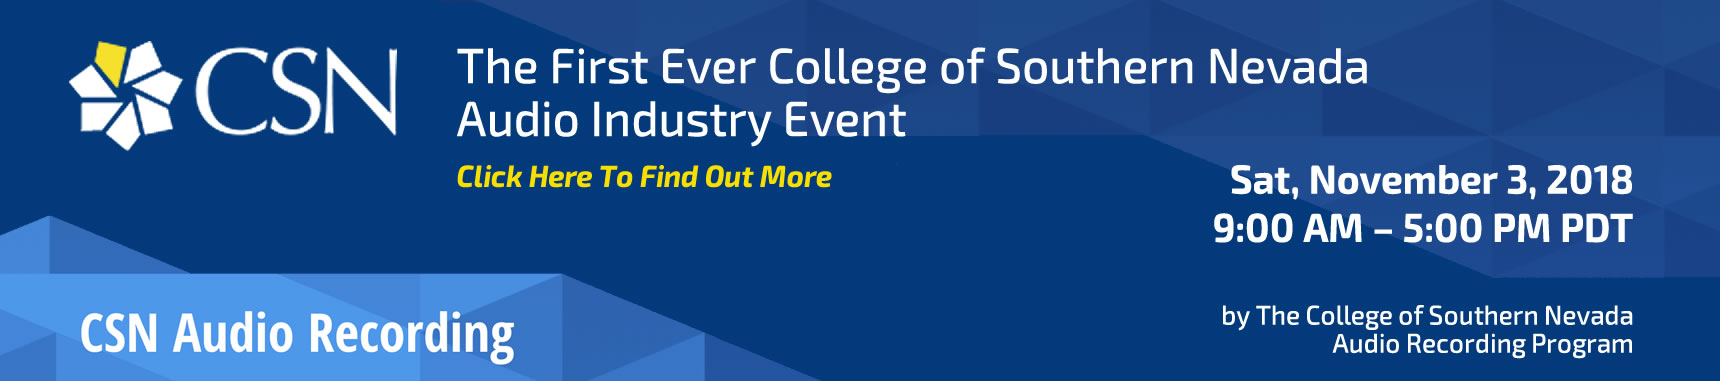 The First Ever College of Southern Nevada Audio Industry Event